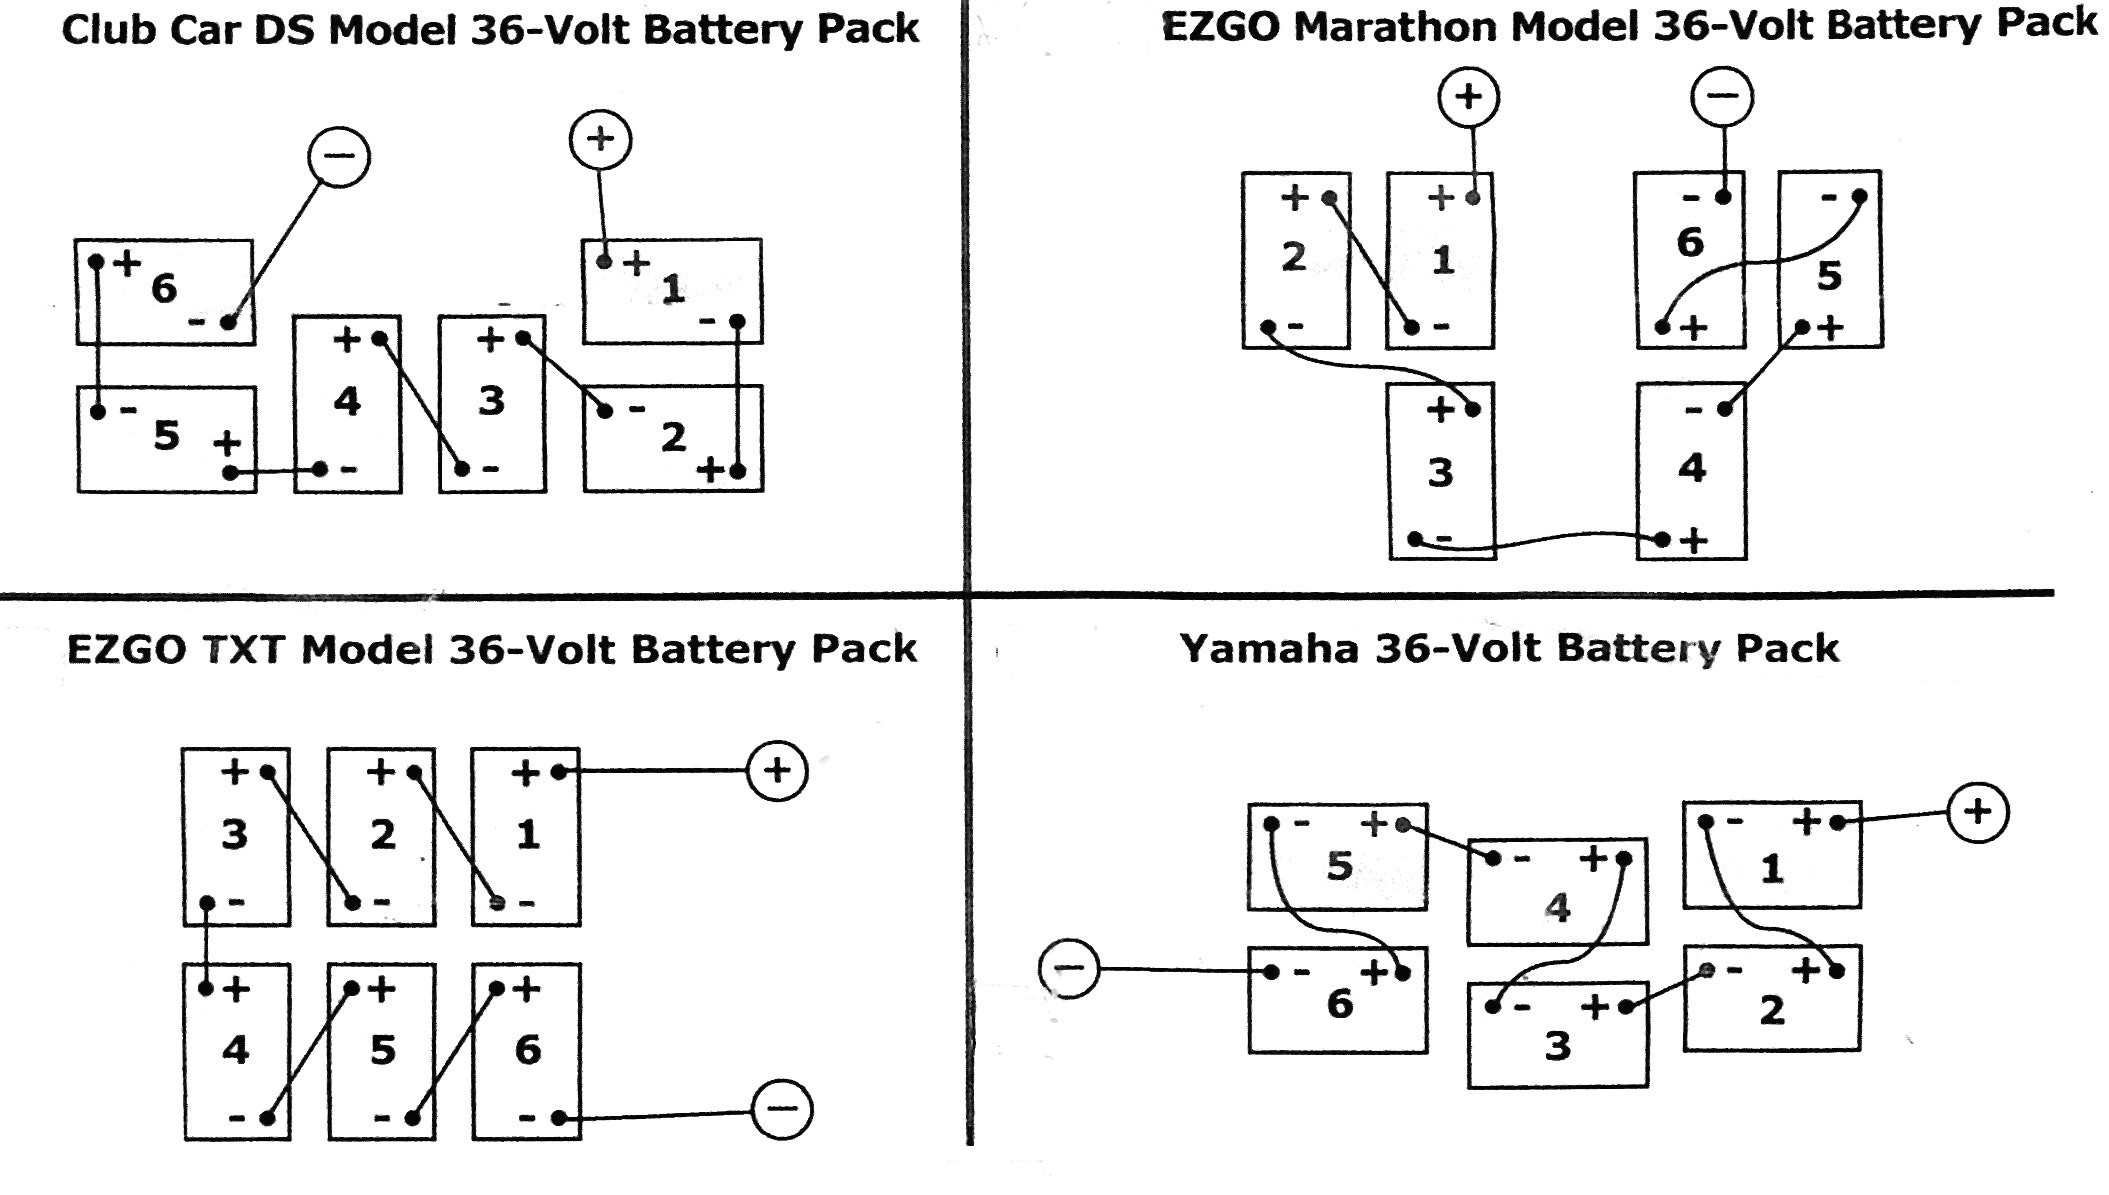 Wiring Diagram for Ezgo Electric Golf Cart Best Golf Cart Wiring Diagram originalstylophone